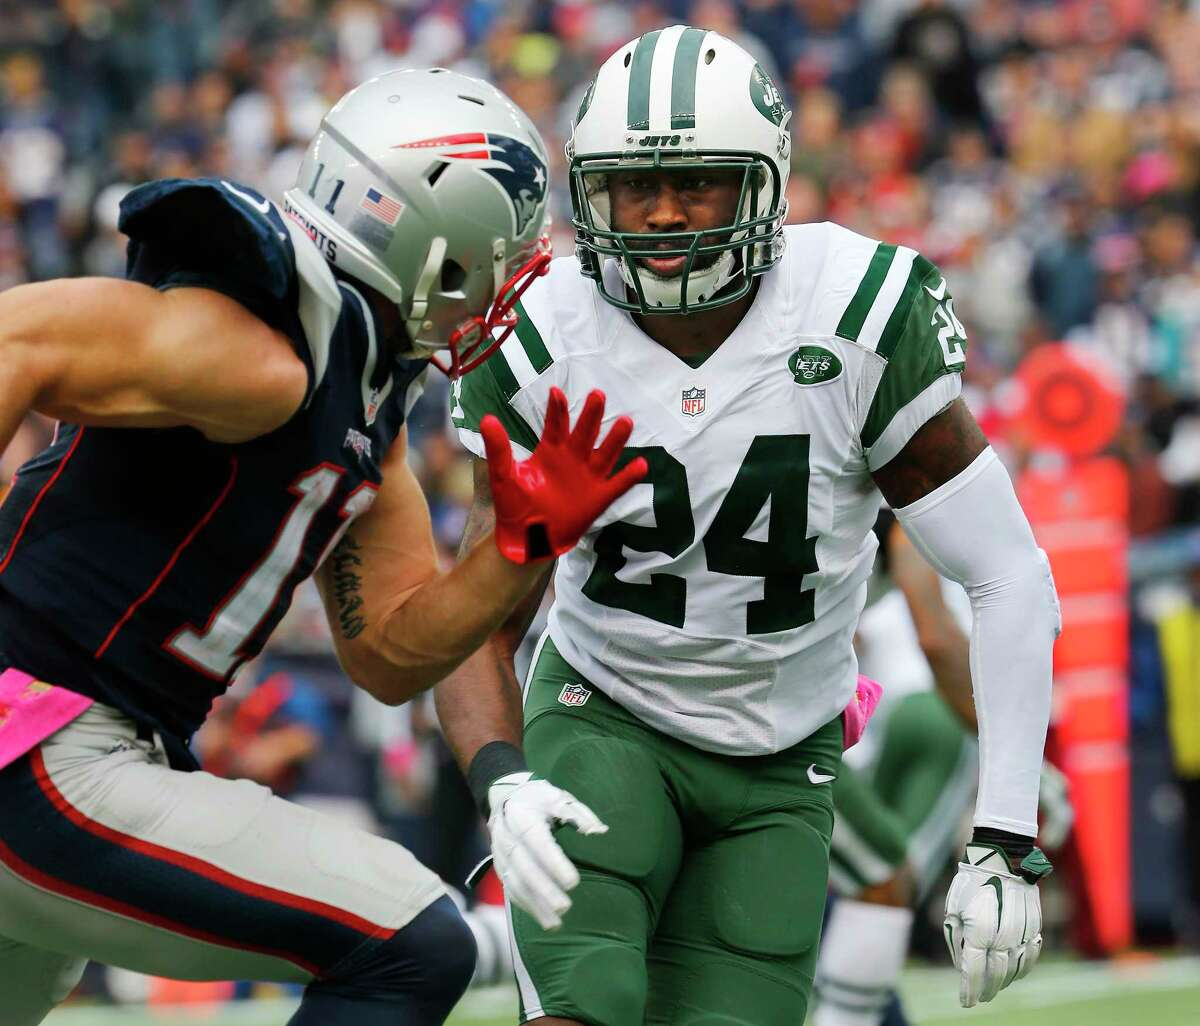 New York Jets cornerback Darrelle Revis is probable for Sunday.